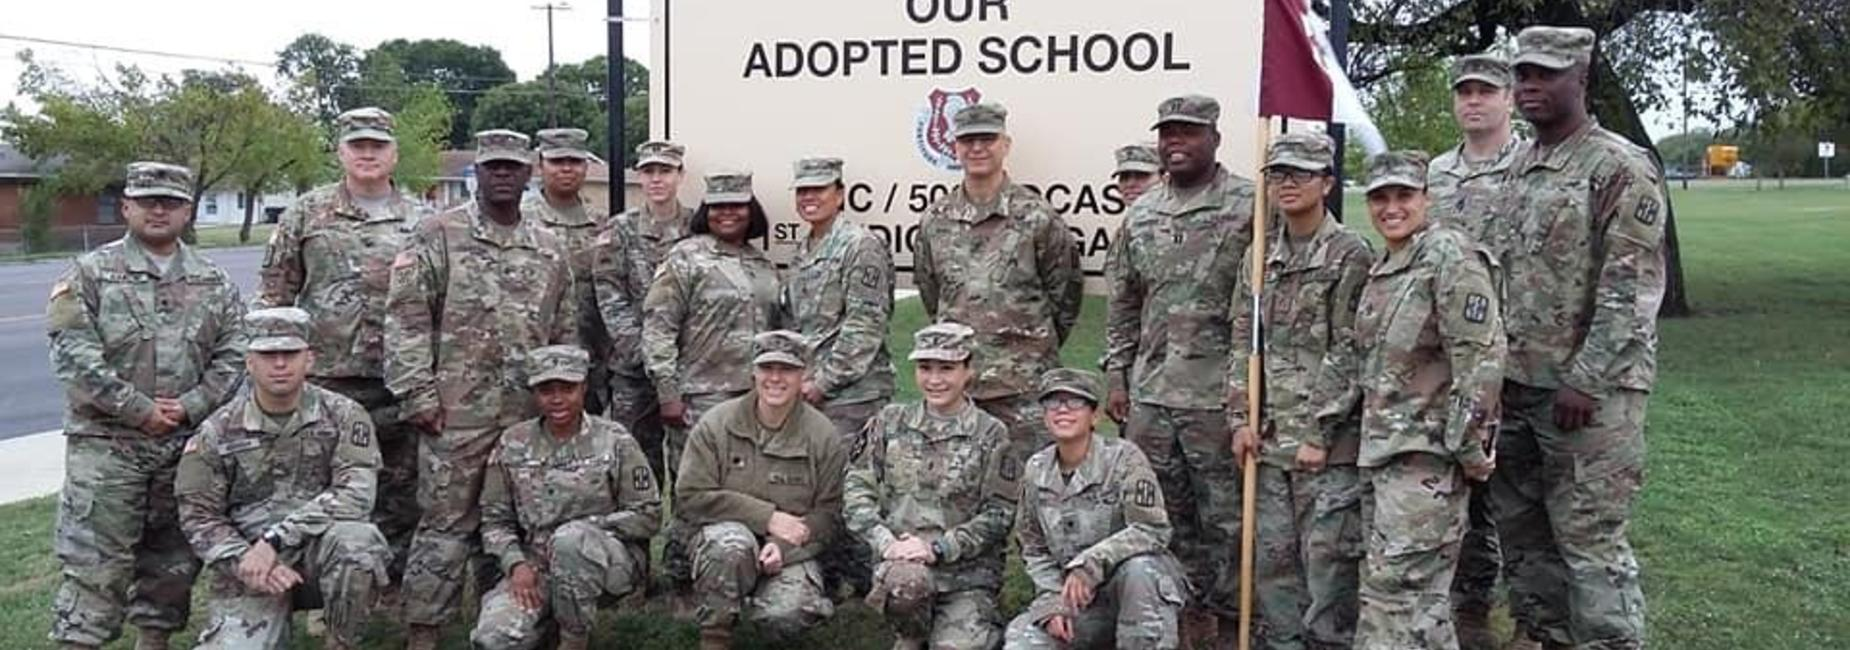 our adopted military unit